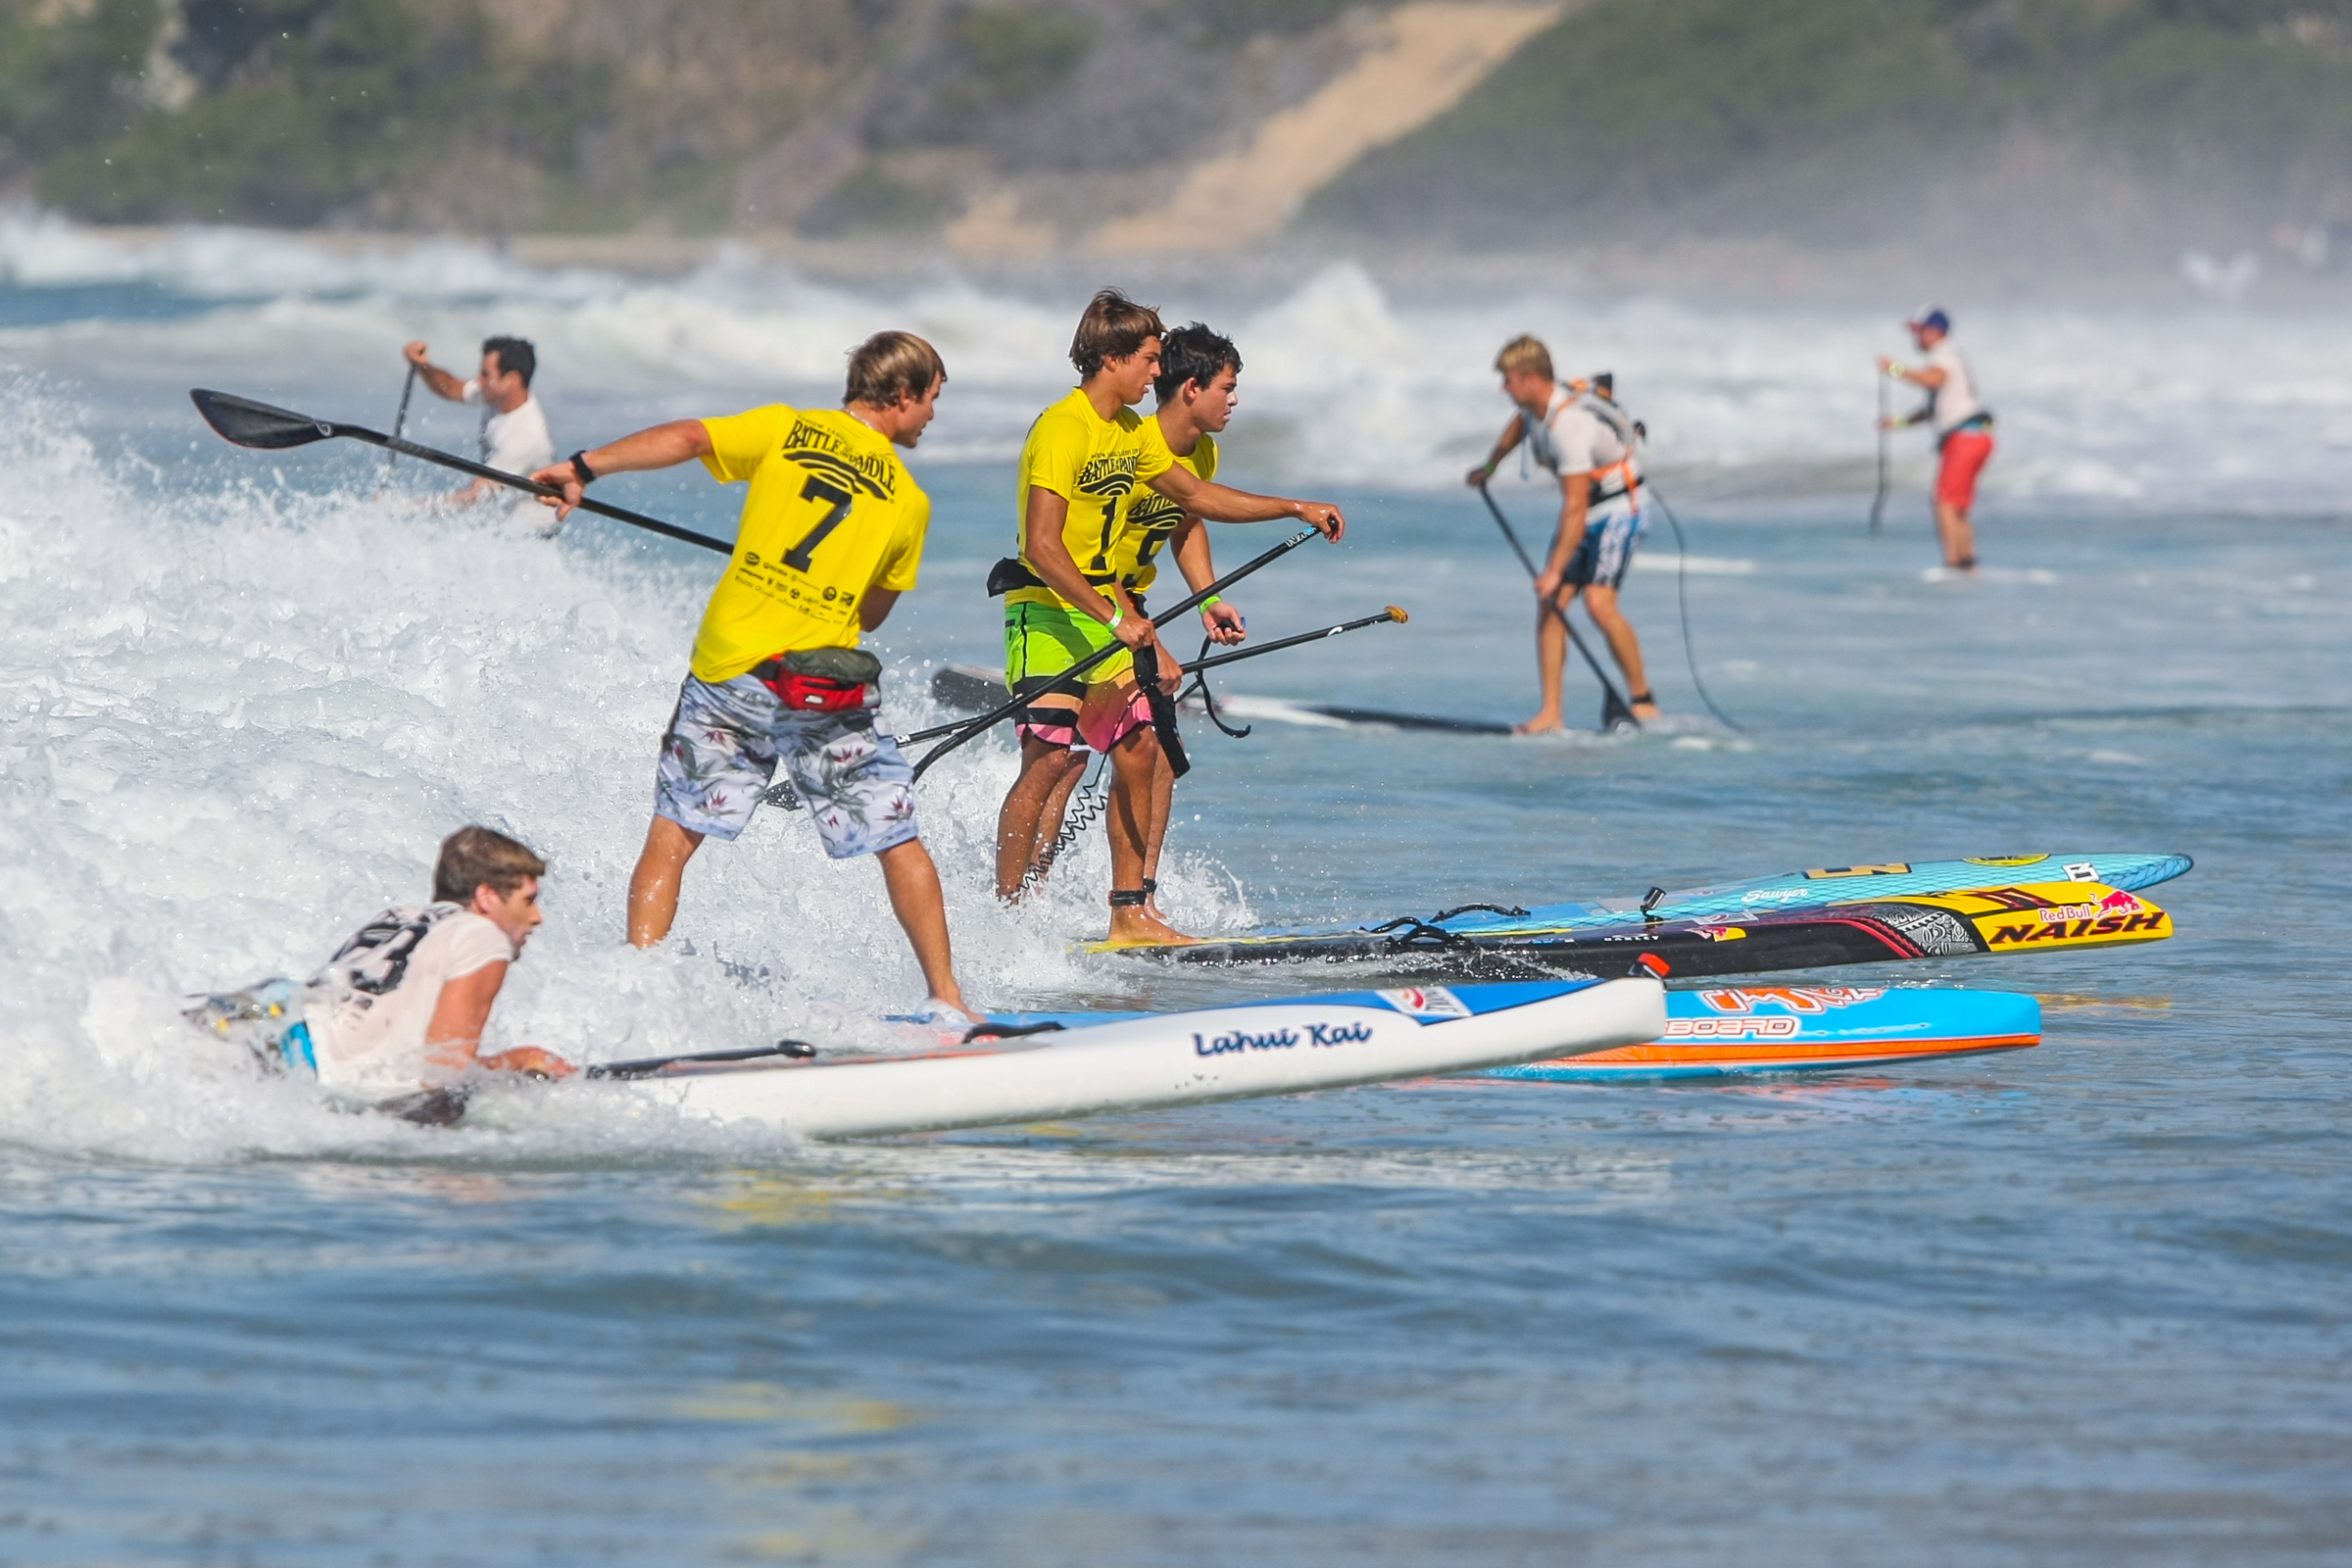 Stand-up paddleboard racers catch a wave at the Battle of the Paddle at Salt Creek Beach. Photo: Tony Tribolet/www.xpsphoto.com